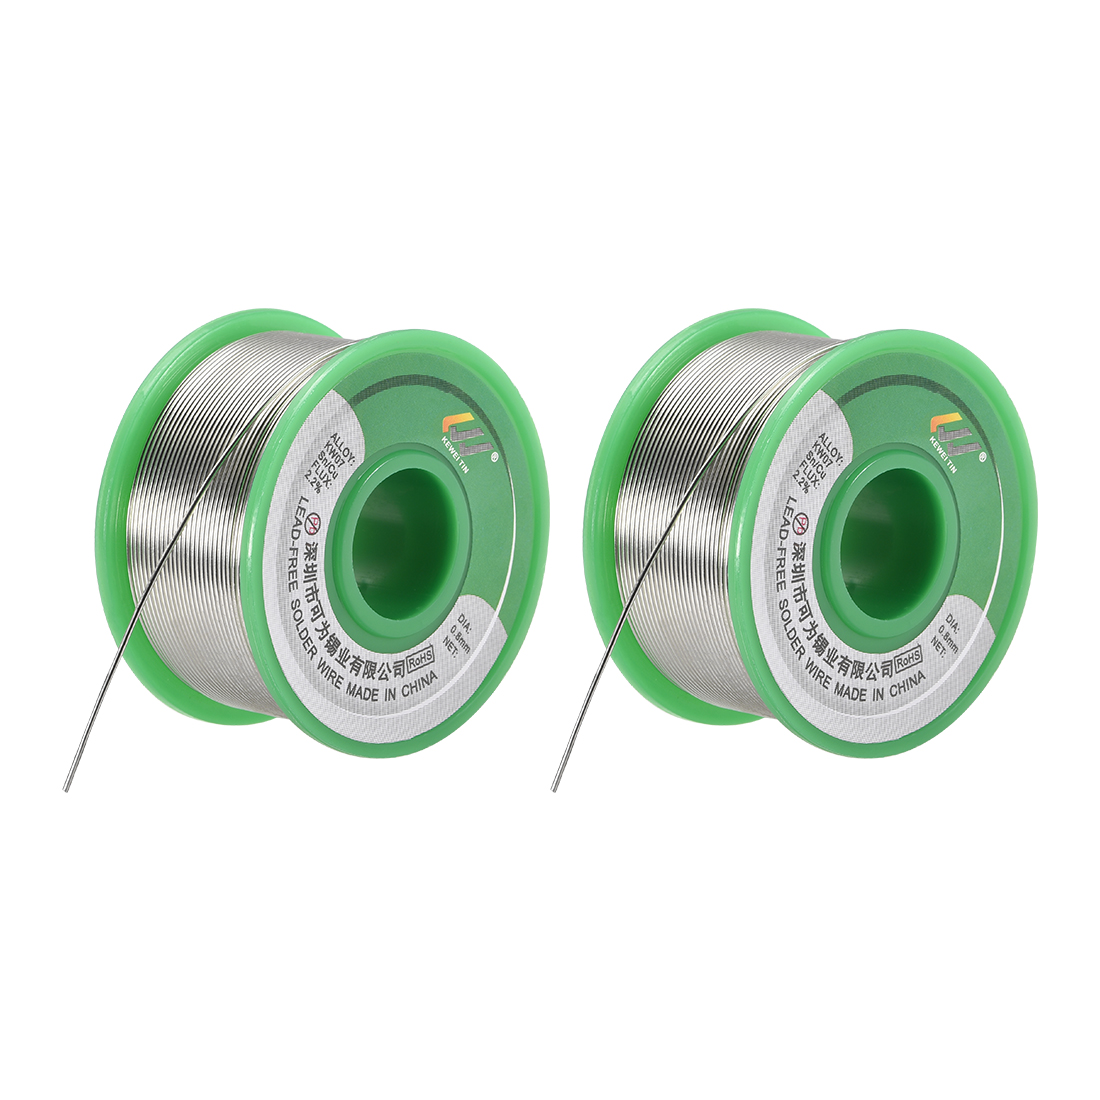 Solder Wire 0.8mm 100g Sn99.3% Cu0.7% with Rosin Core 2Pcs for Soldering